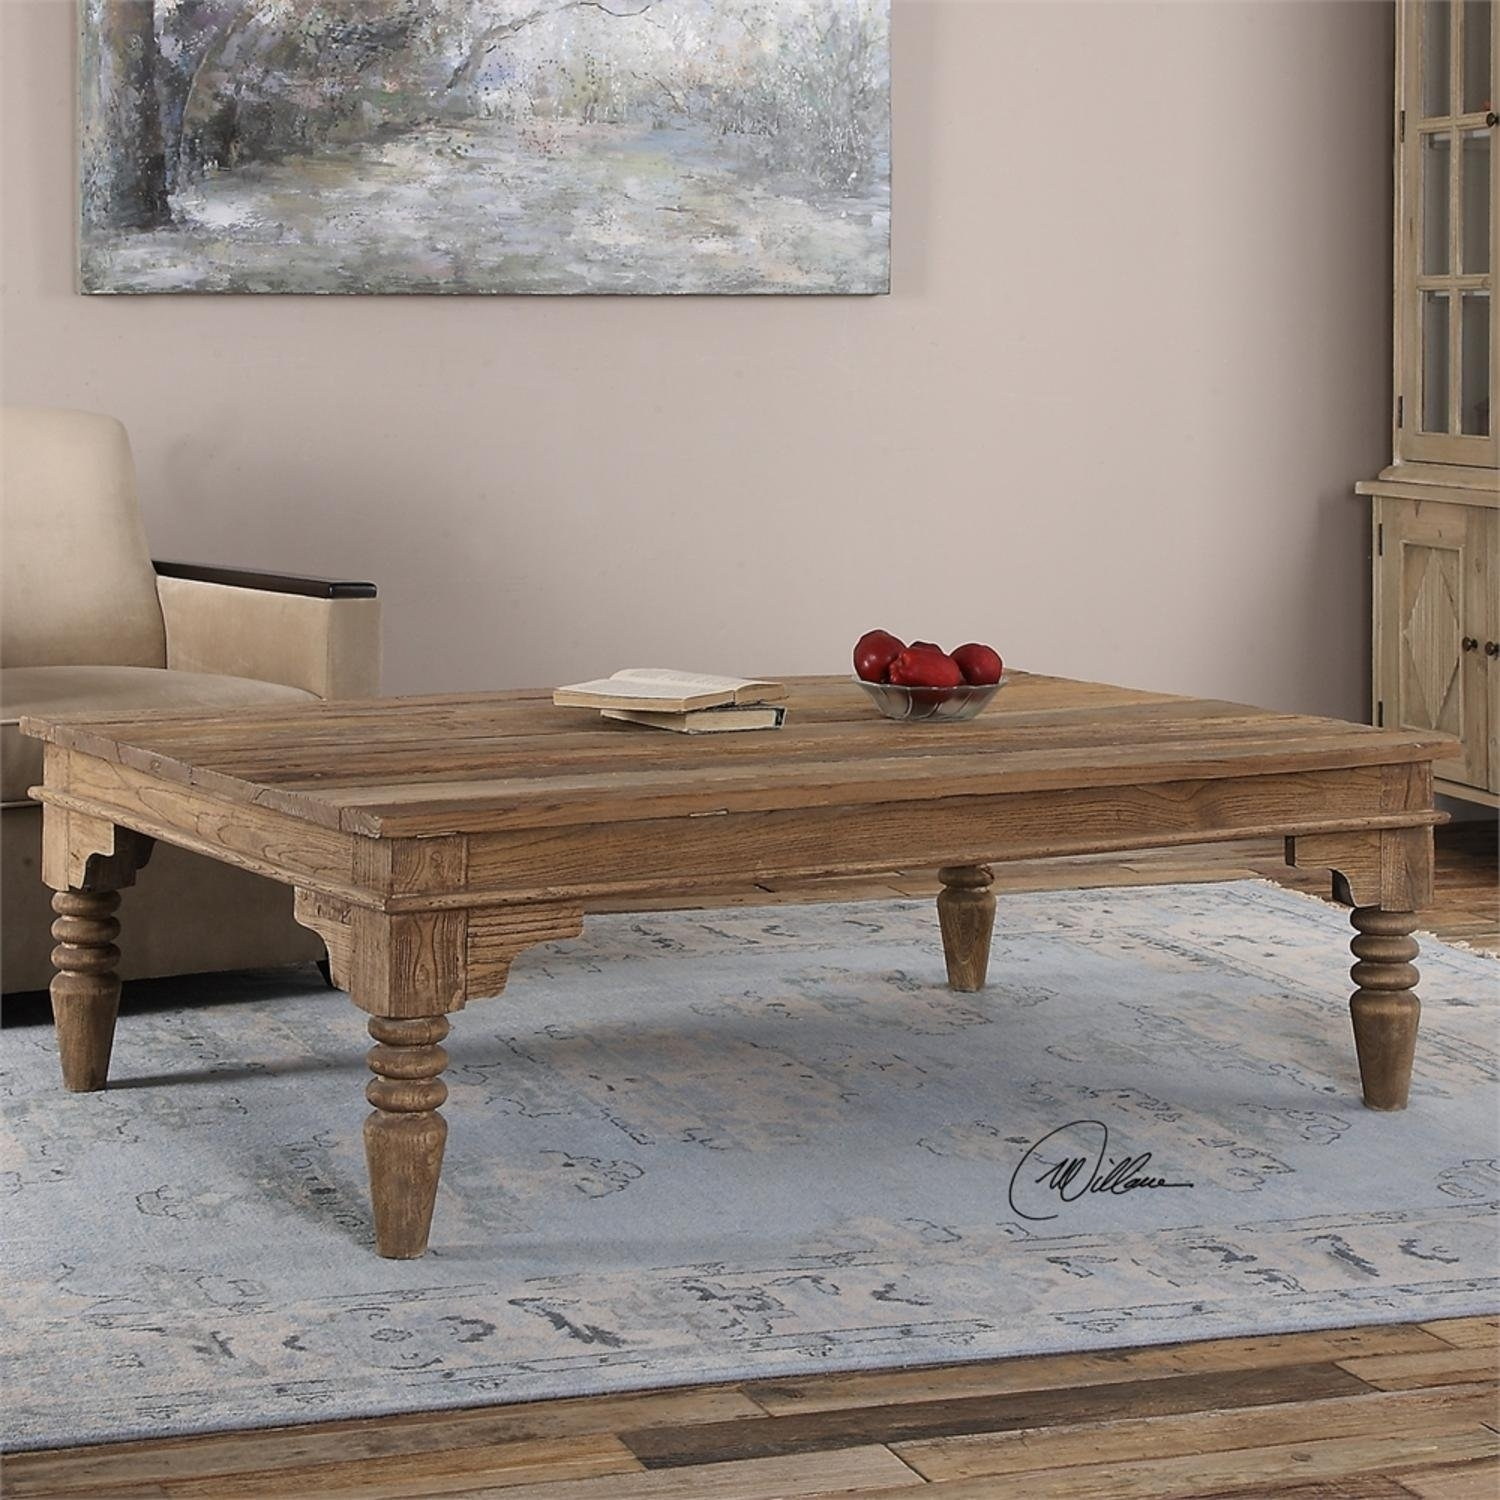 Cheap West Elm Table, Find West Elm Table Deals On Line At Alibaba Within Newest Natural Wood & Recycled Elm 87 Inch Dining Tables (Image 5 of 20)